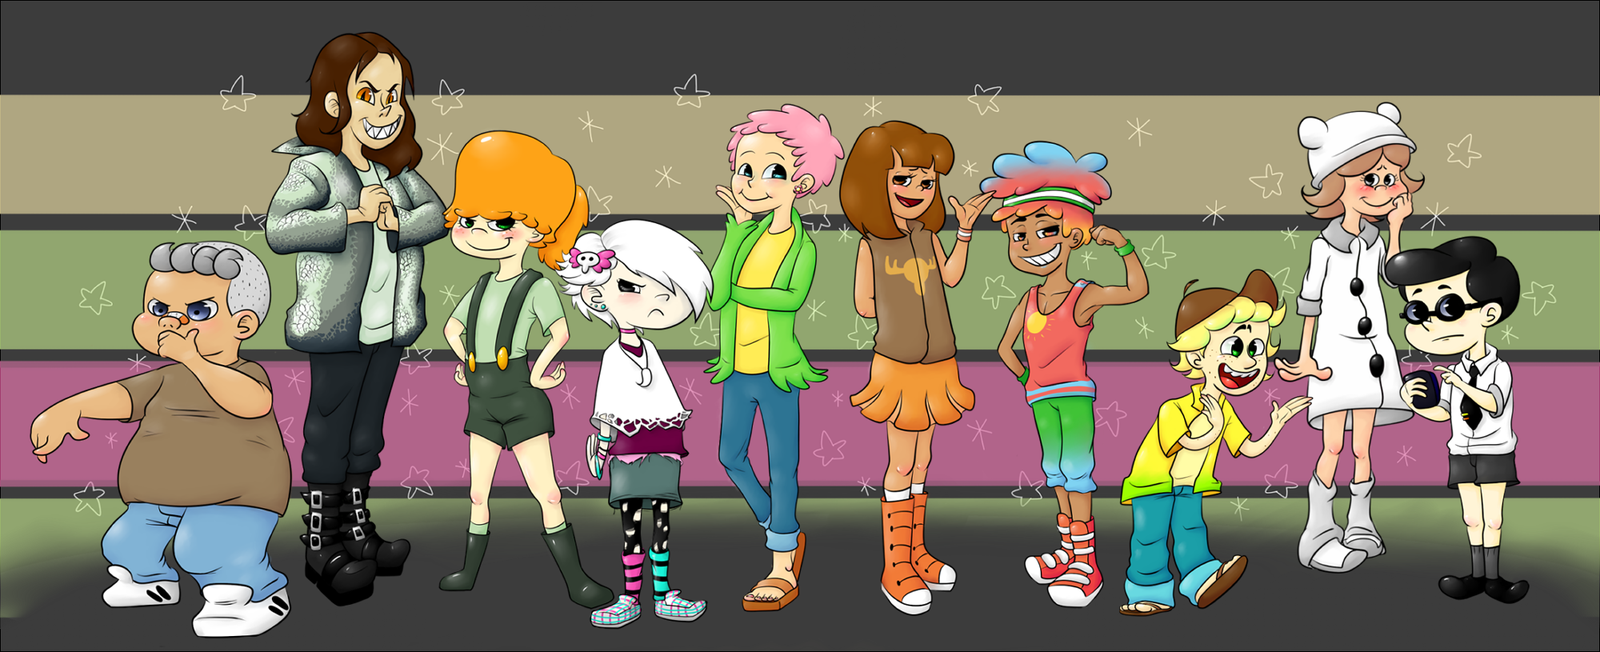 the/amazing/world/gumball/humanized - Google Search ...